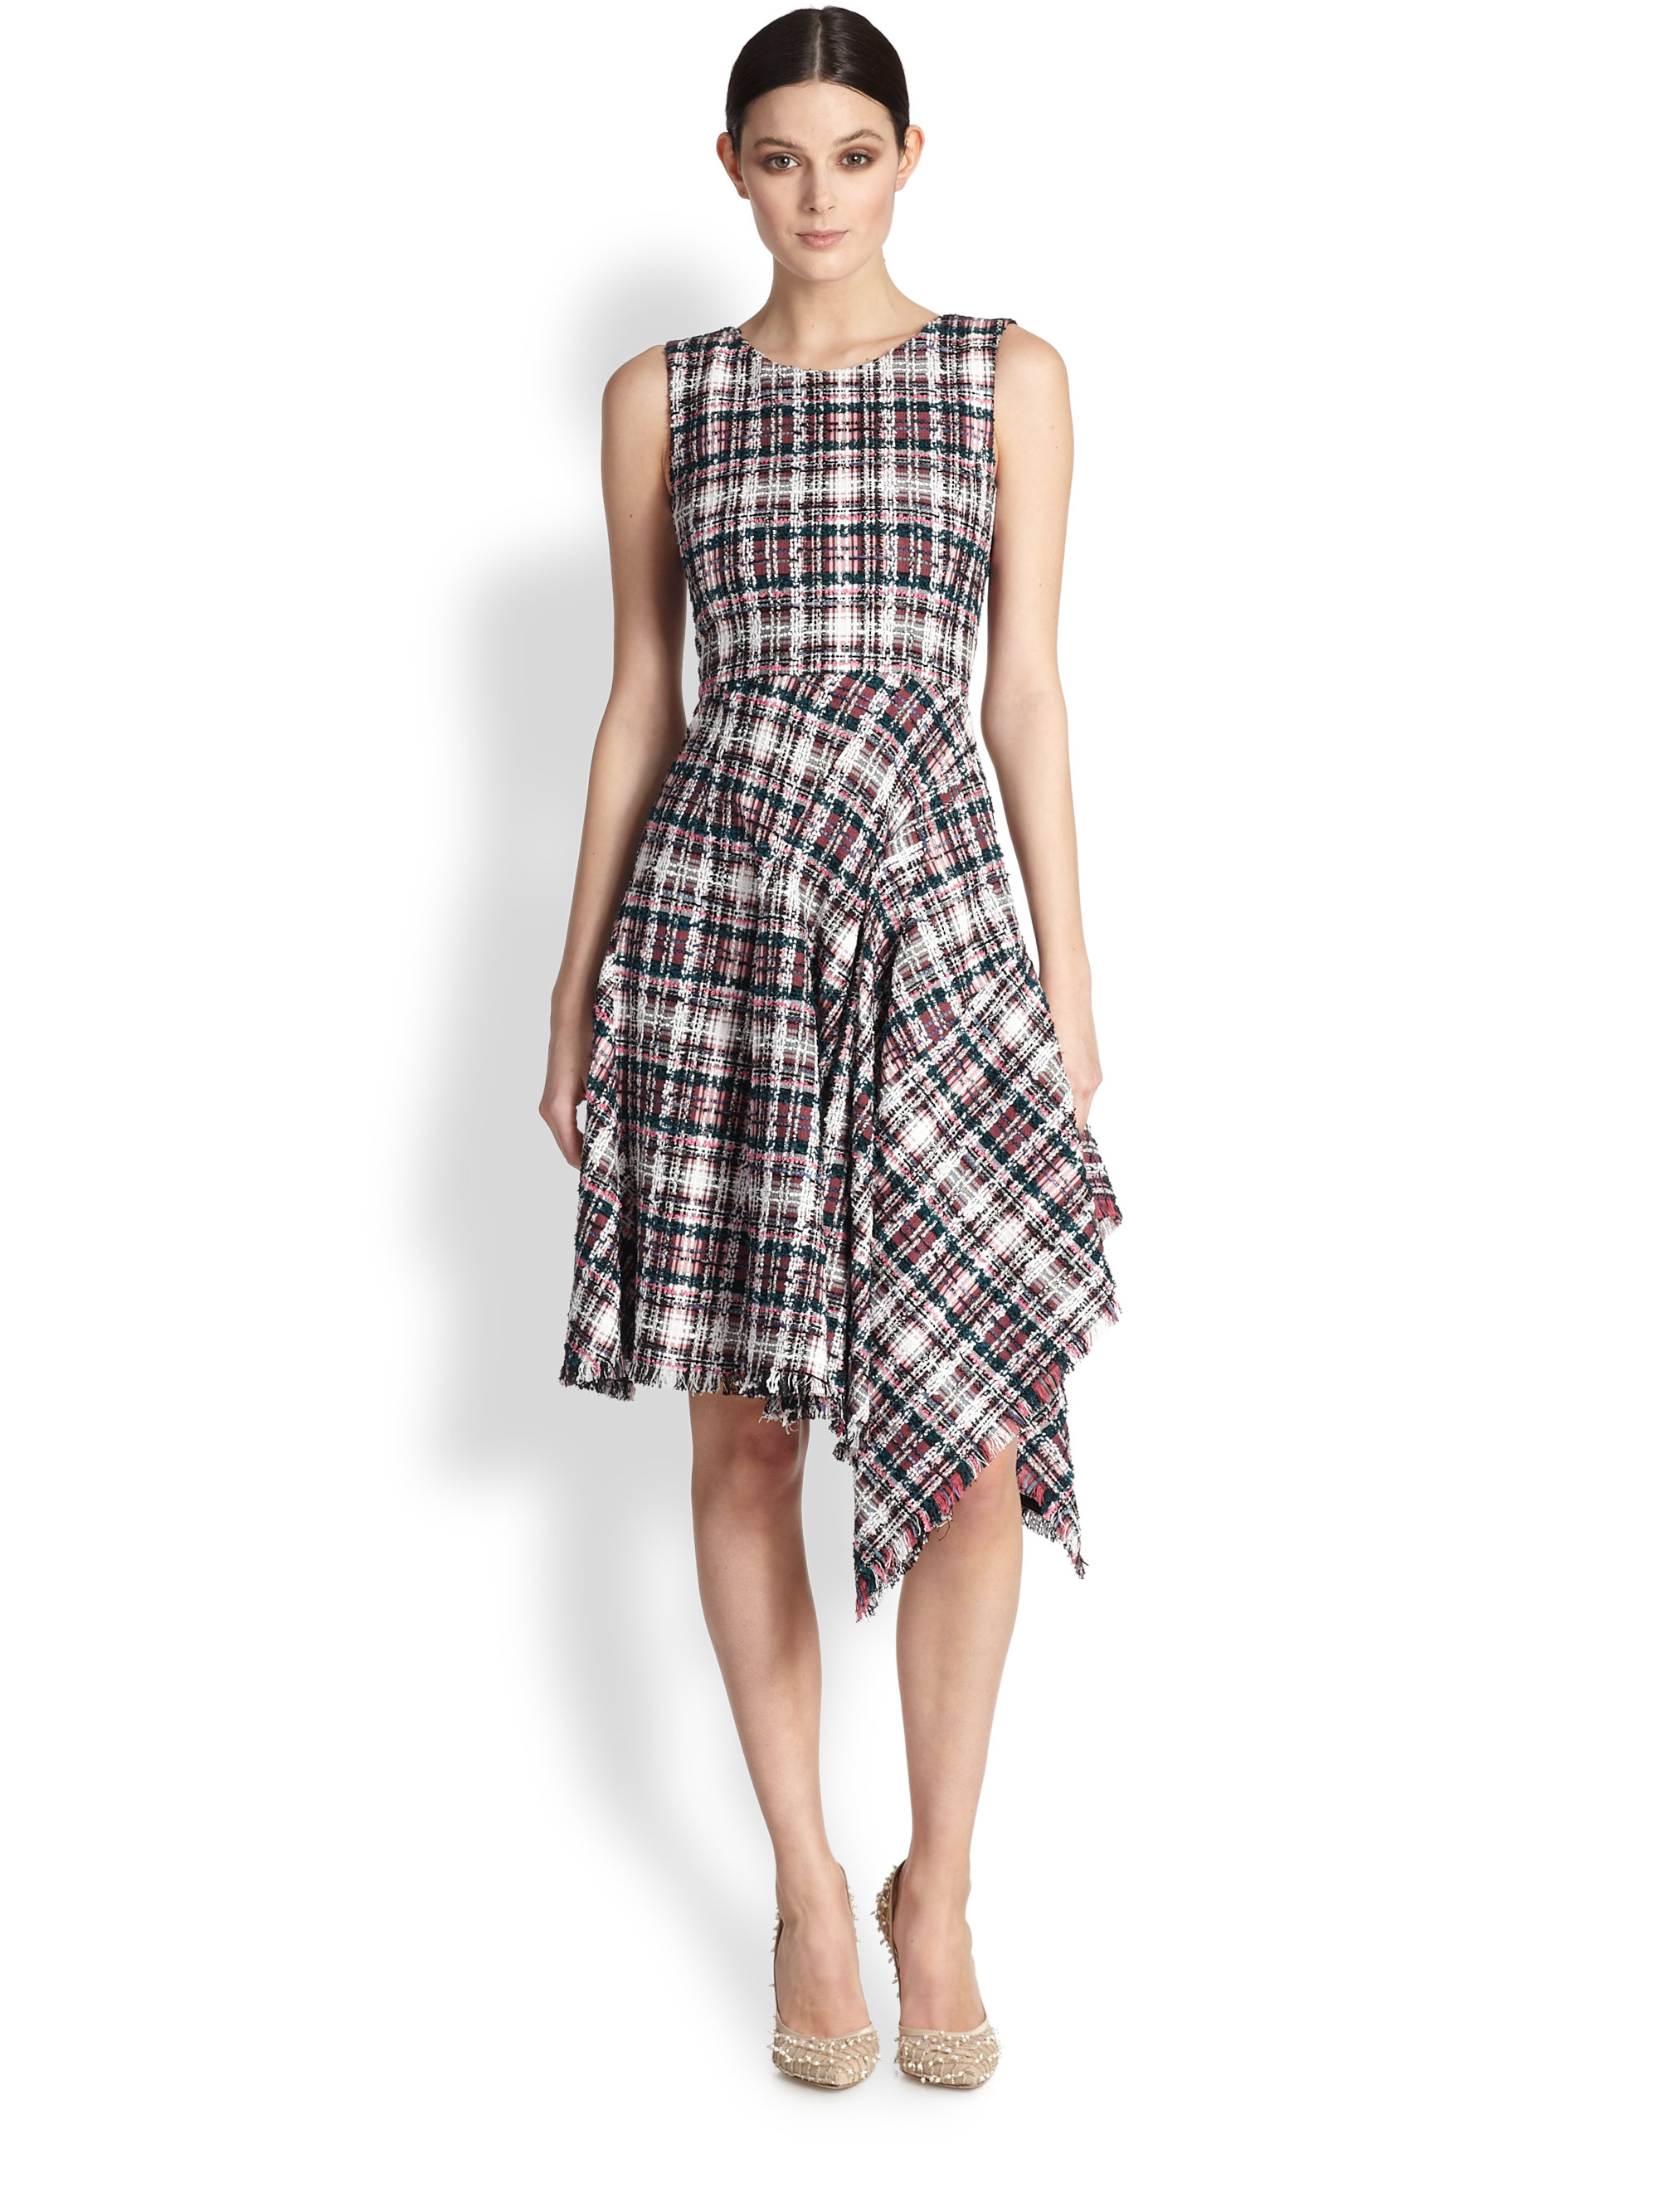 Lyst - Oscar De La Renta Asymmetrical Flamingo Plaid Tweed Dress